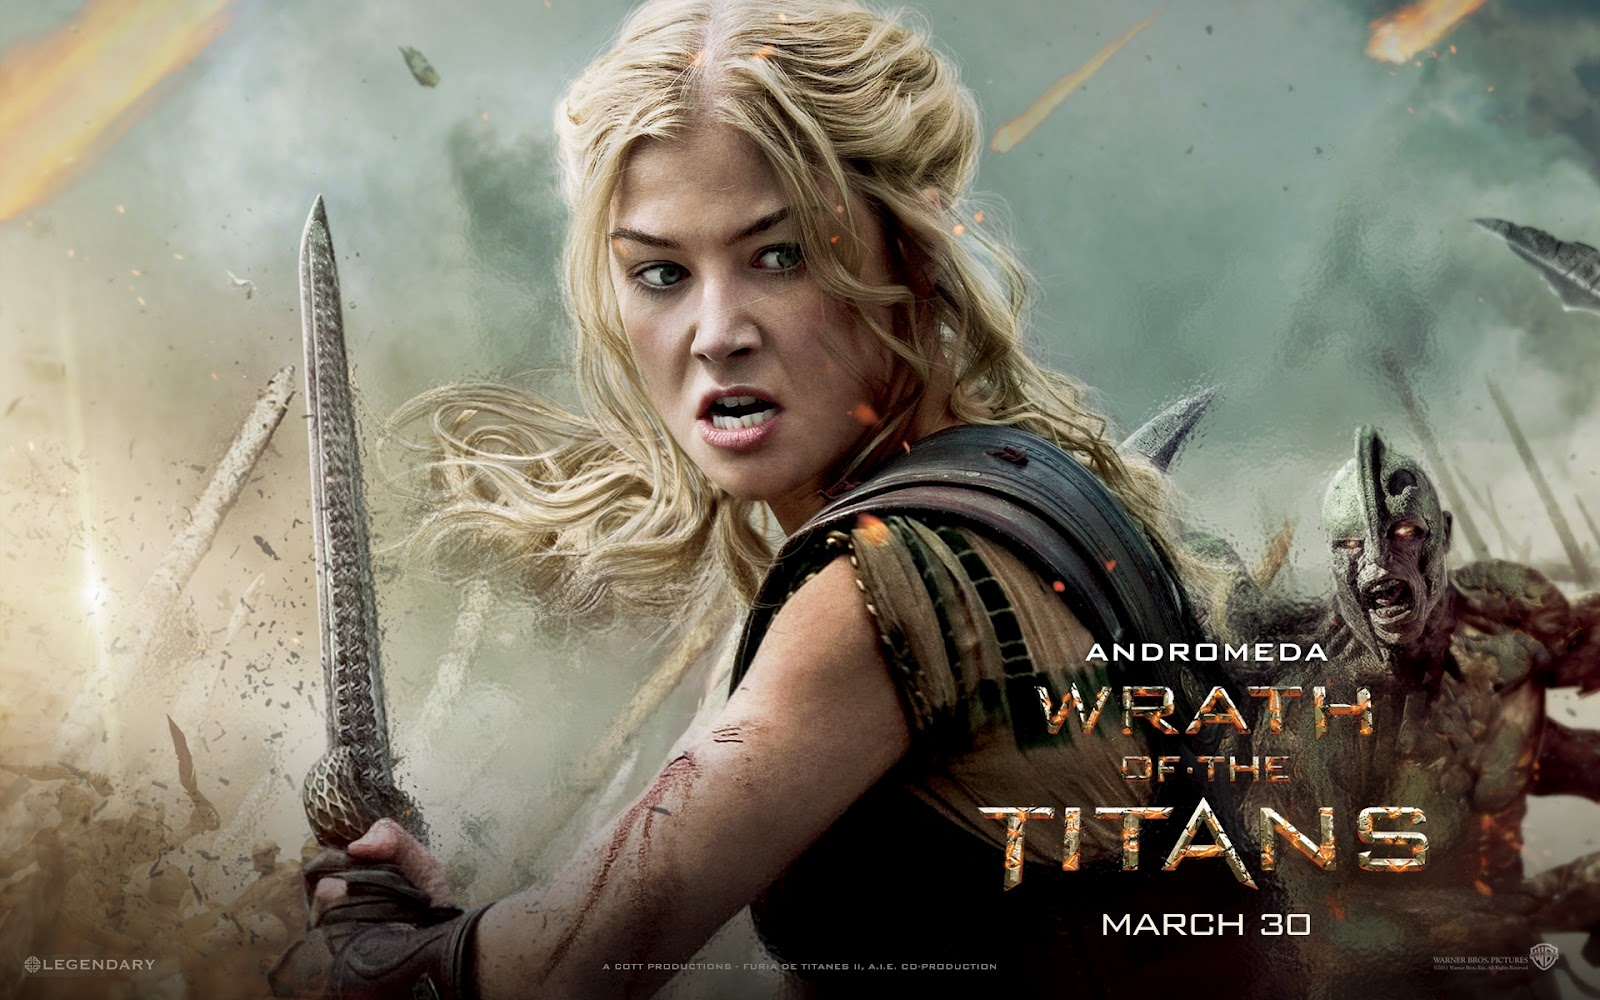 http://4.bp.blogspot.com/-2YTg7ZH2Ido/T3Xk-MxHssI/AAAAAAAALEM/YnW5uYAa3-E/s1600/andromed_Warth_of_the_titans_movie_wallpaper_1920x1200.jpg